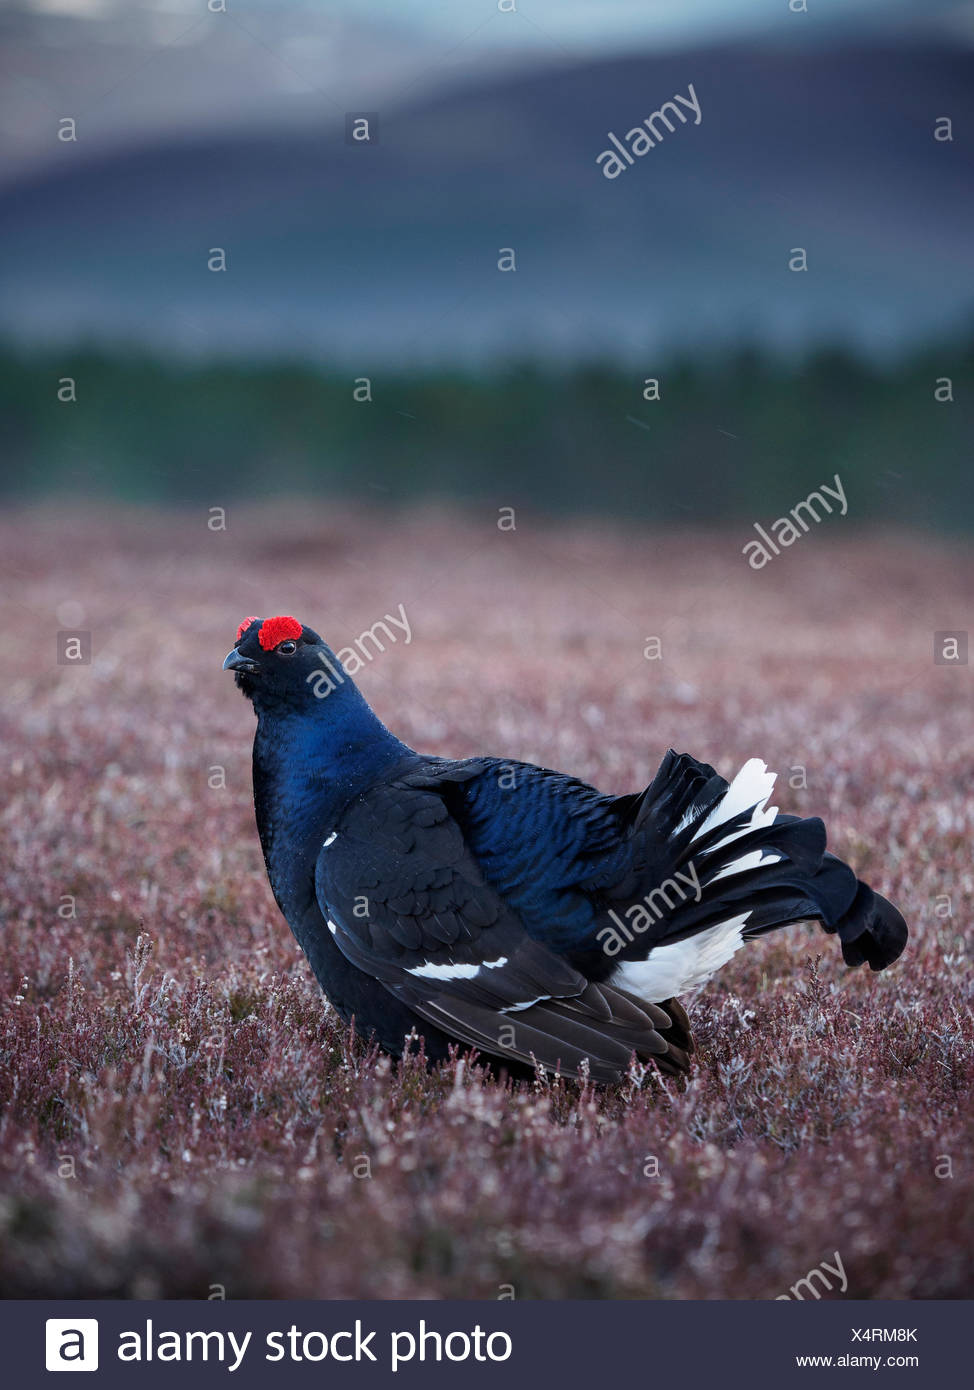 A black grouse on a lek in the highlands of Scotland. - Stock Image